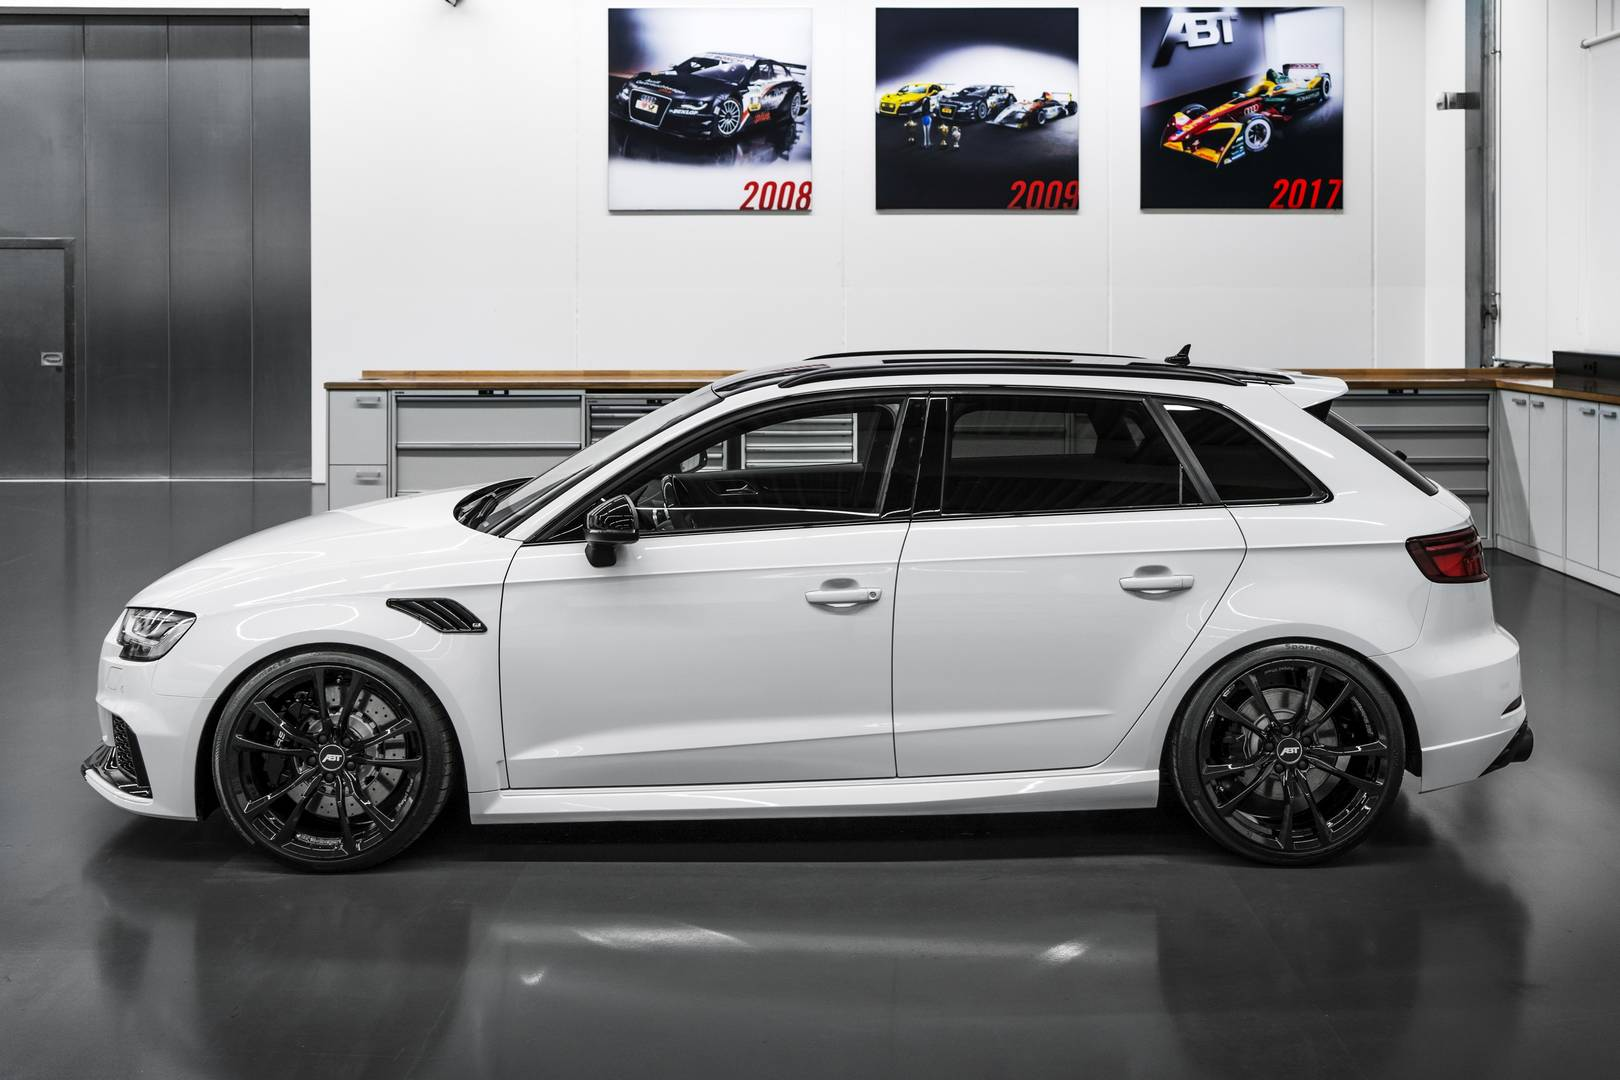 official abt audi rs3 with 500hp gtspirit. Black Bedroom Furniture Sets. Home Design Ideas